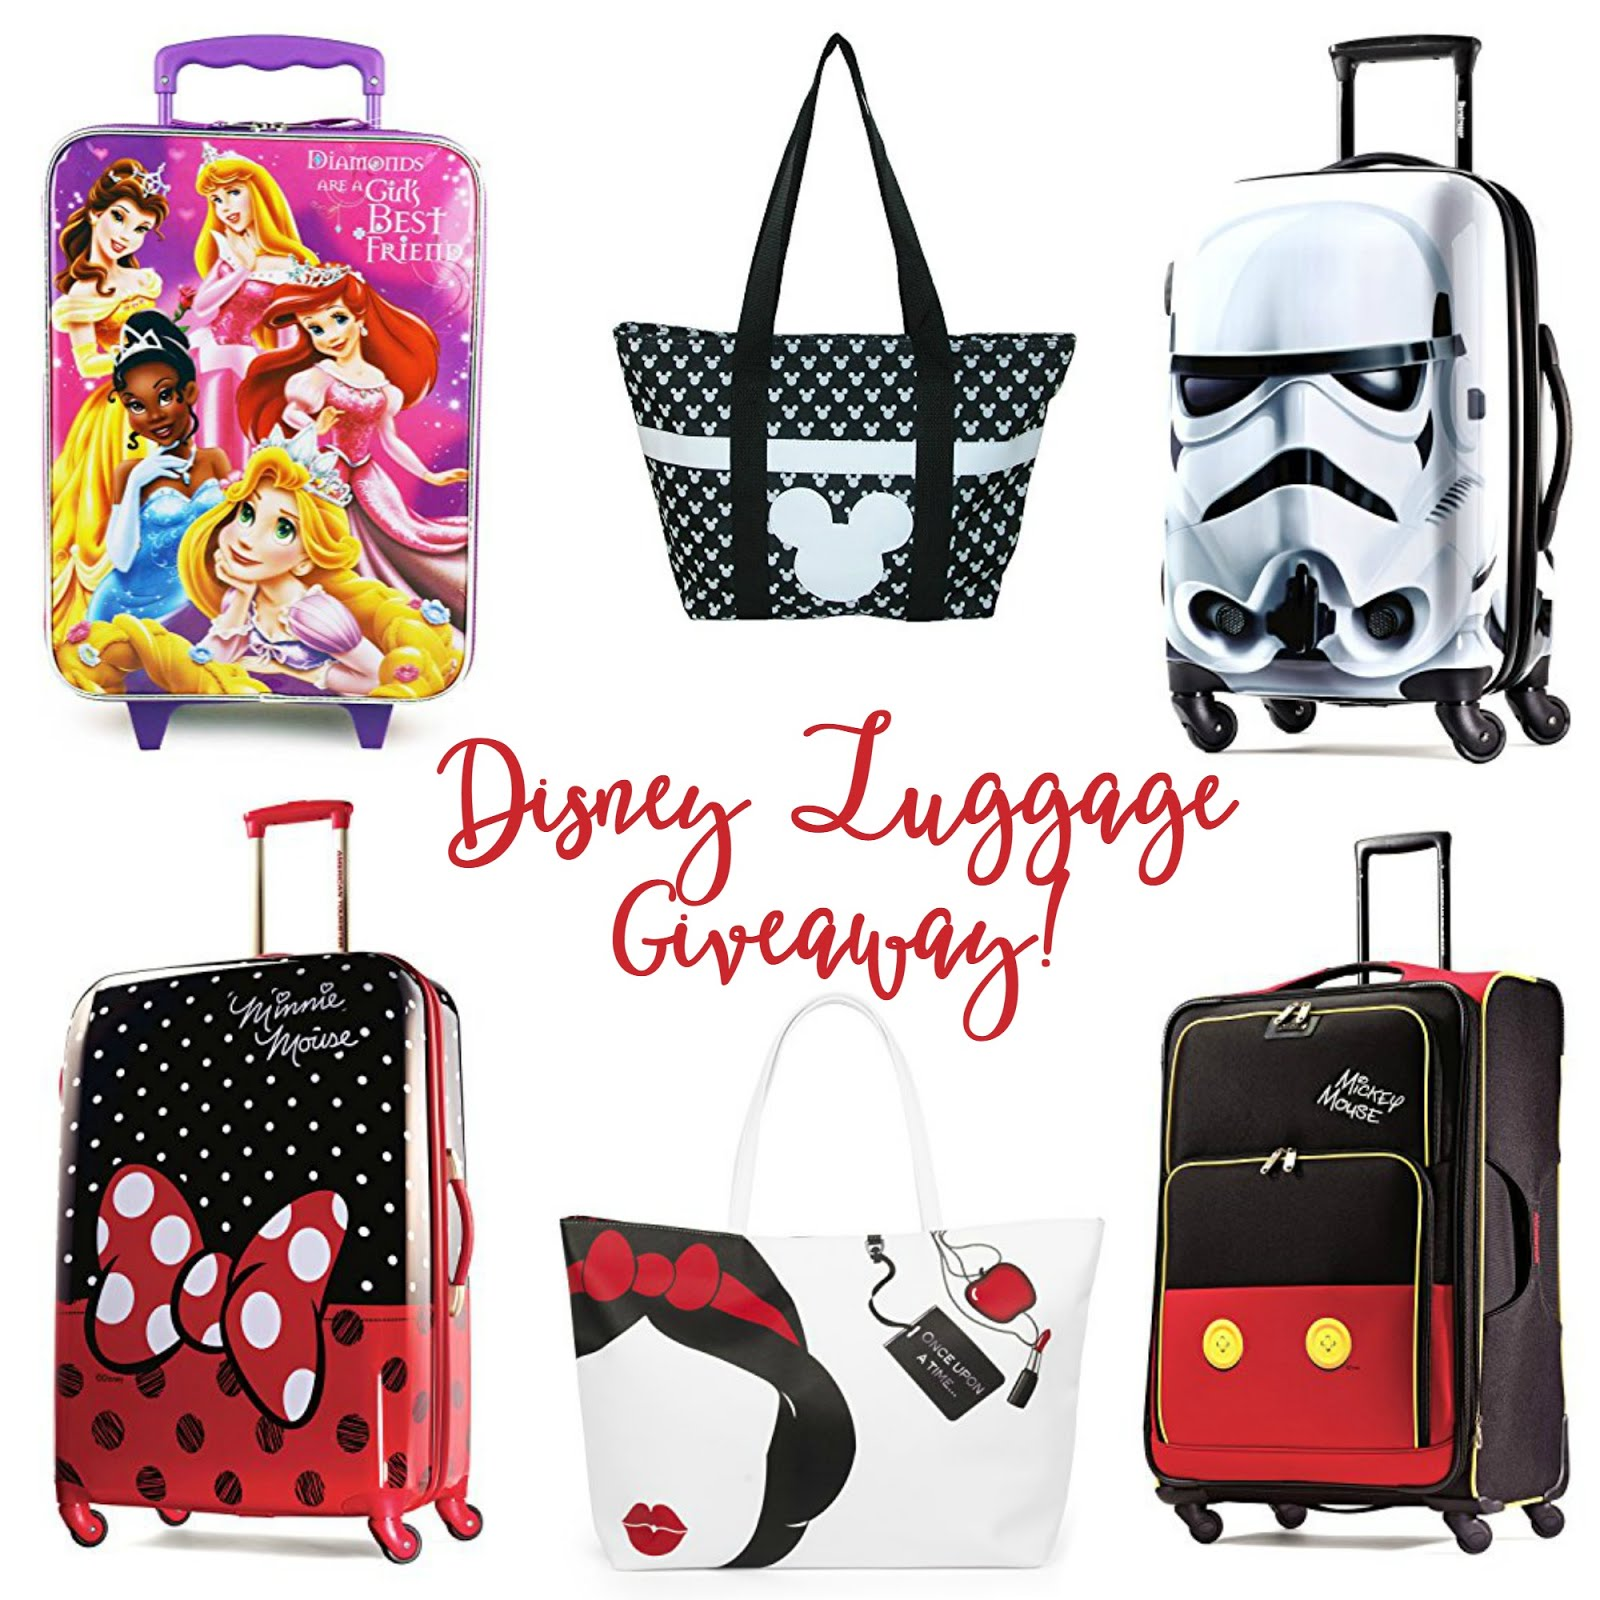 Get entered to win in the Disney Luggage Giveaway!